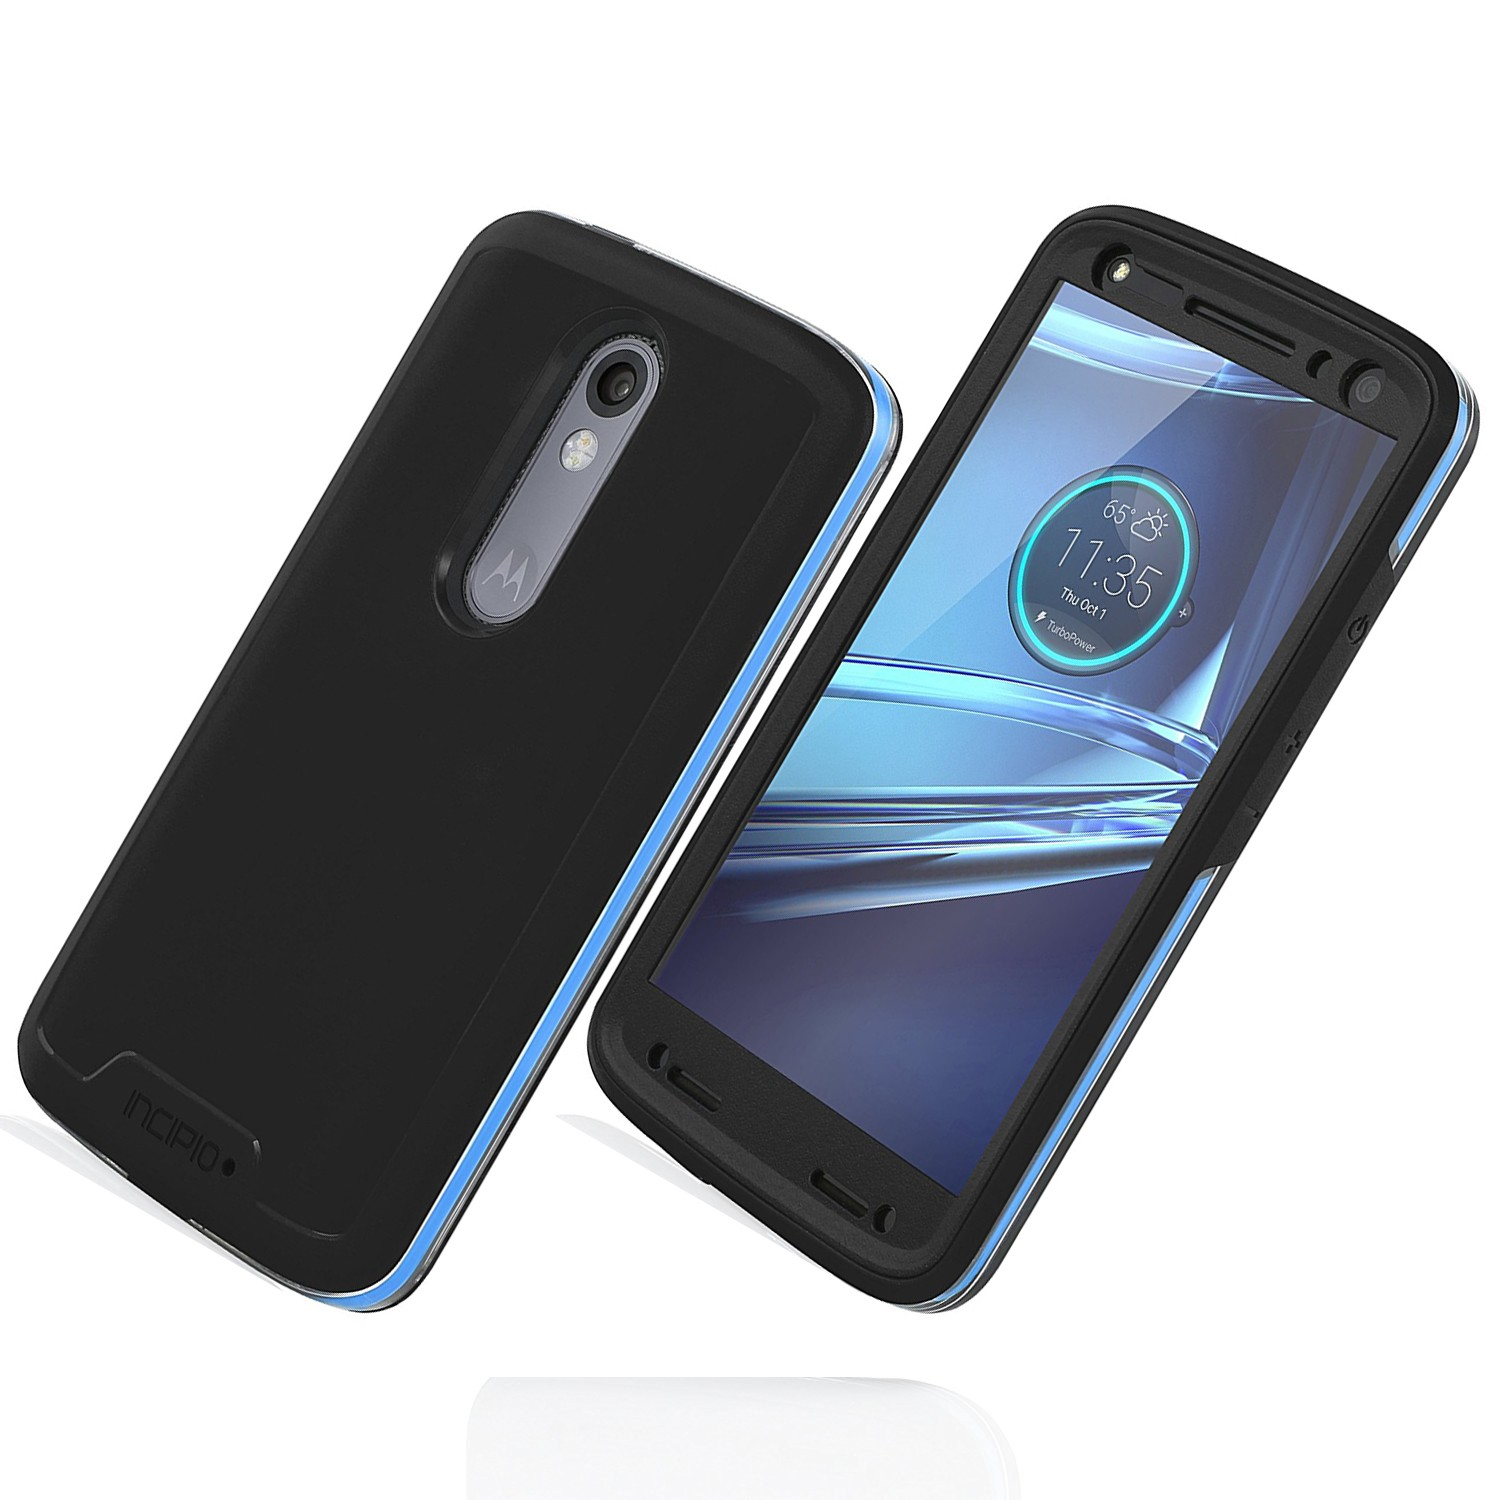 Incipio Performance Level 5 Case with Holster for Motorola Droid Turbo 2 (Blue/Black)